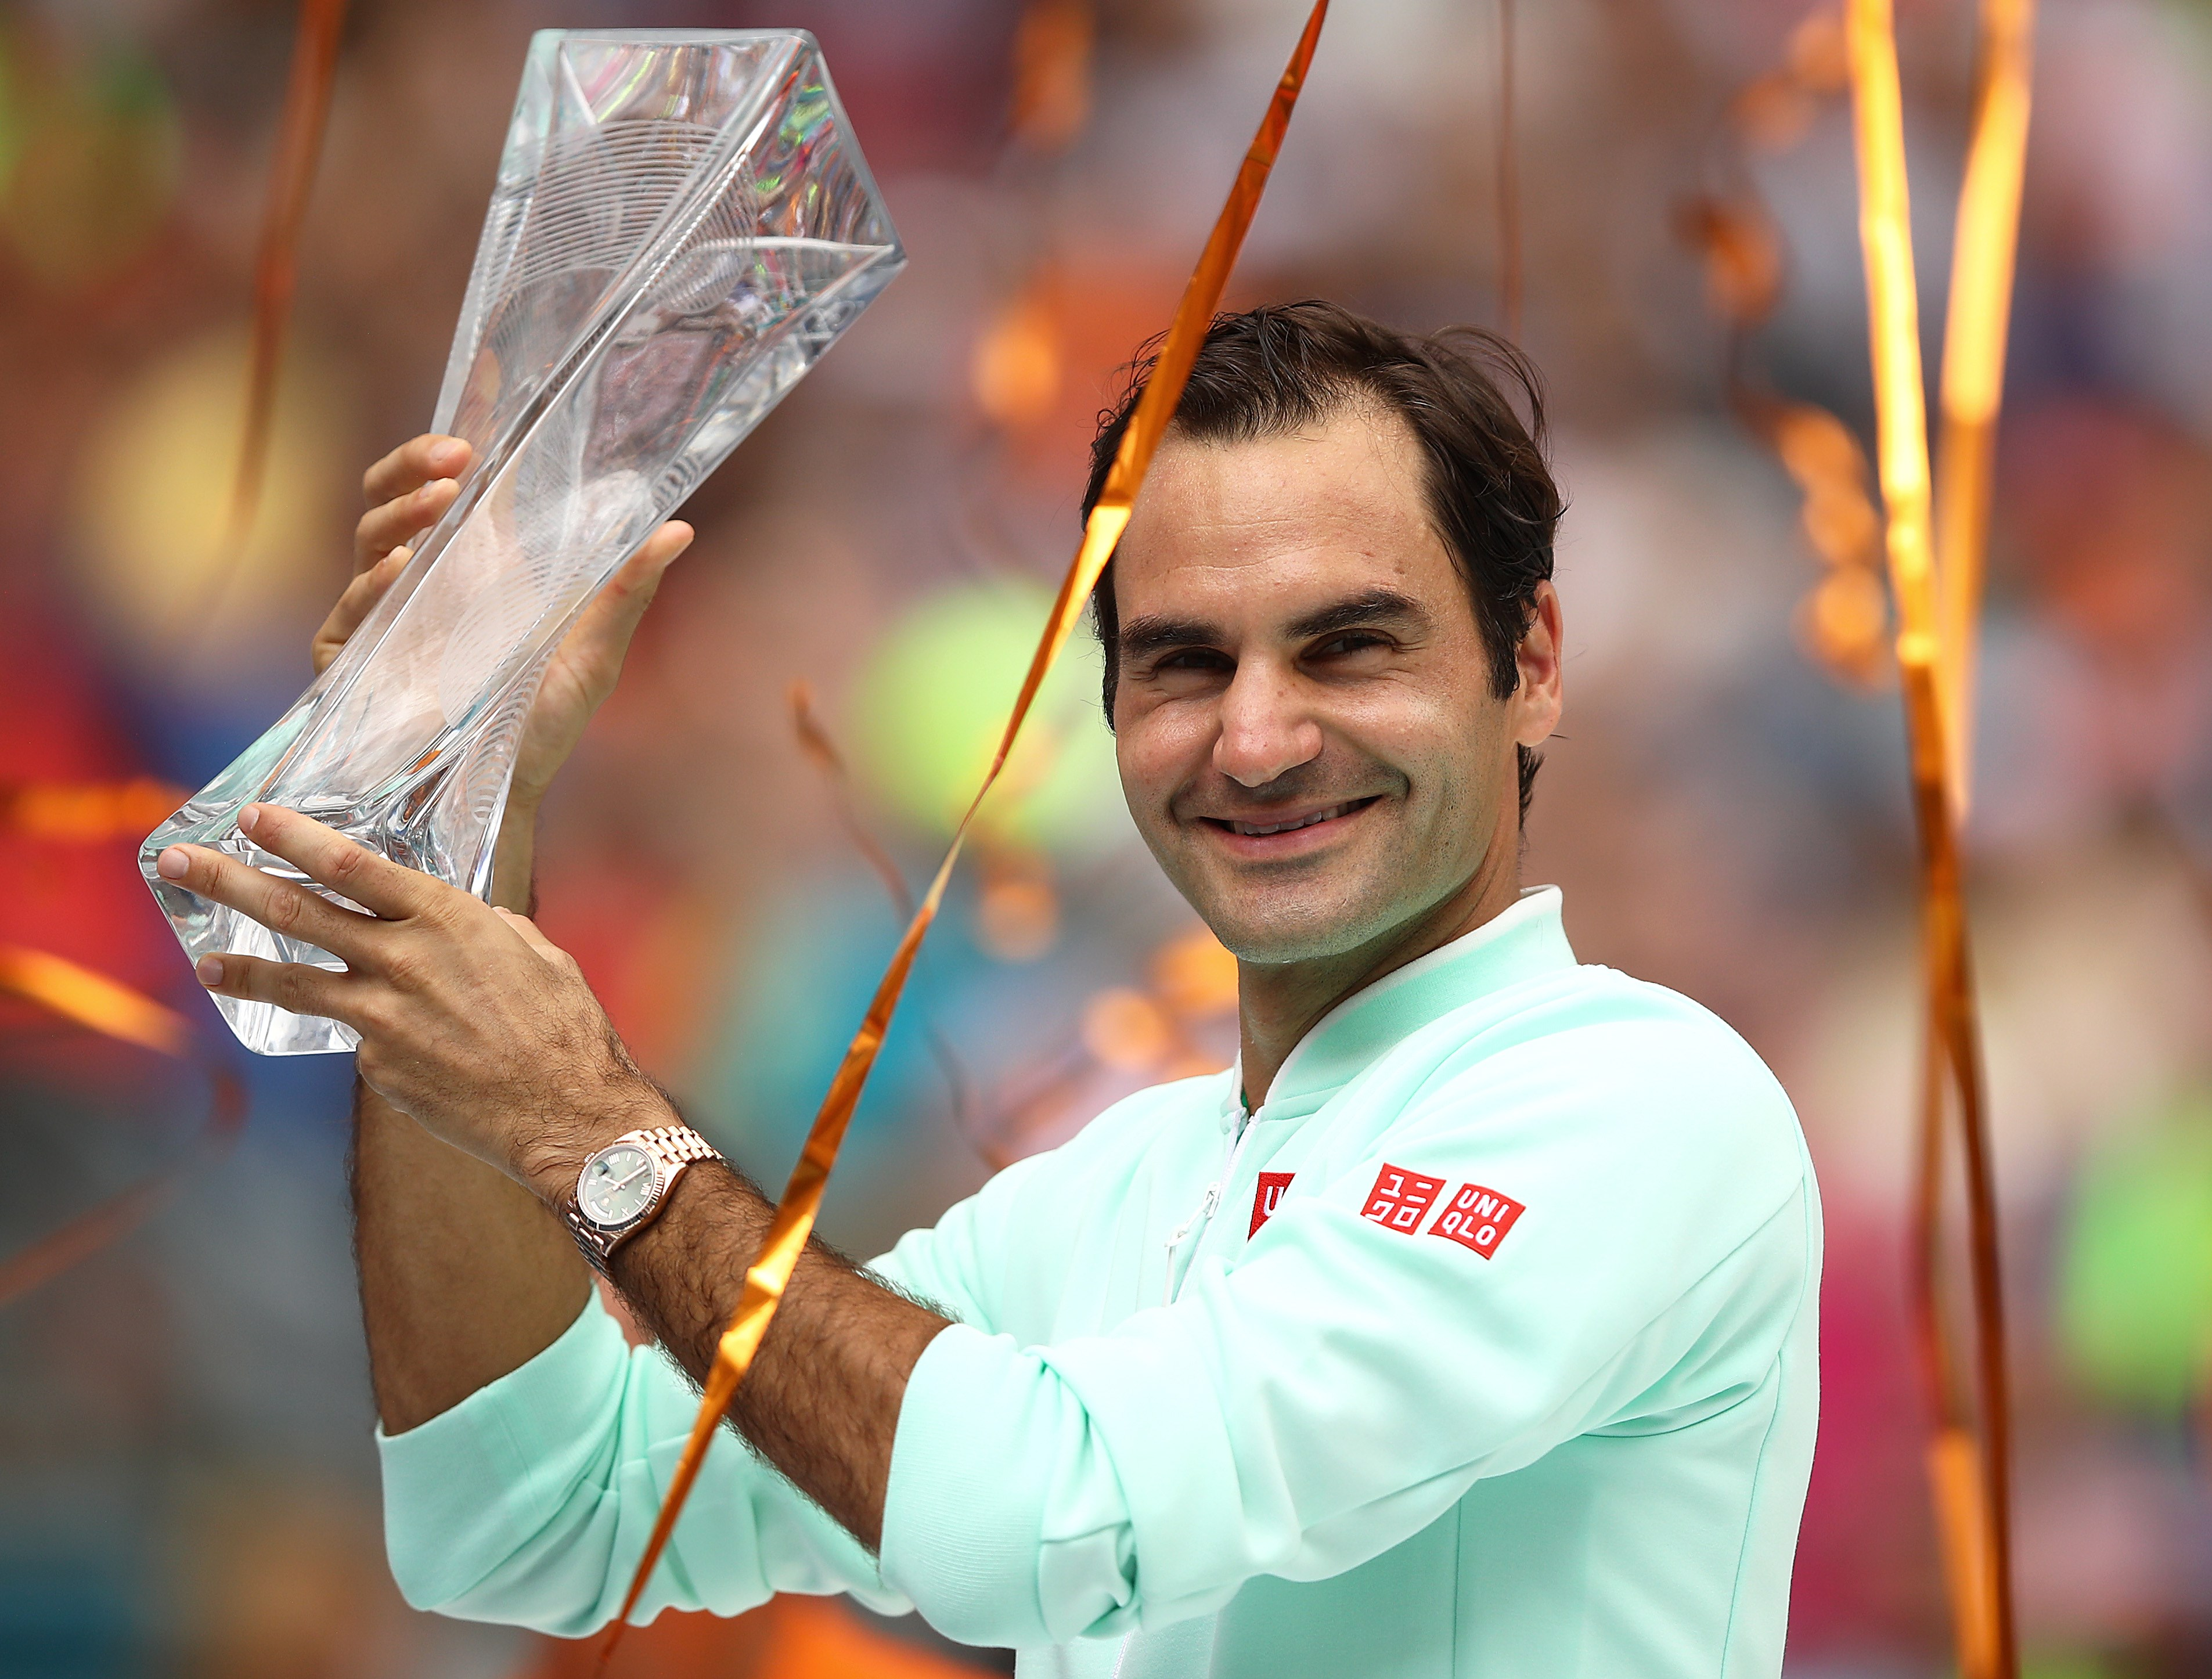 MIAMI GARDENS, FLORIDA - MARCH 31: Roger Federer of Switzerland celebrates with the winners trophy against John Isner of USA in the final during day fourteen of the Miami Open tennis on March 31, 2019 in Miami Gardens, Florida.   Julian Finney/Getty Images/AFP == FOR NEWSPAPERS, INTERNET, TELCOS & TELEVISION USE ONLY ==